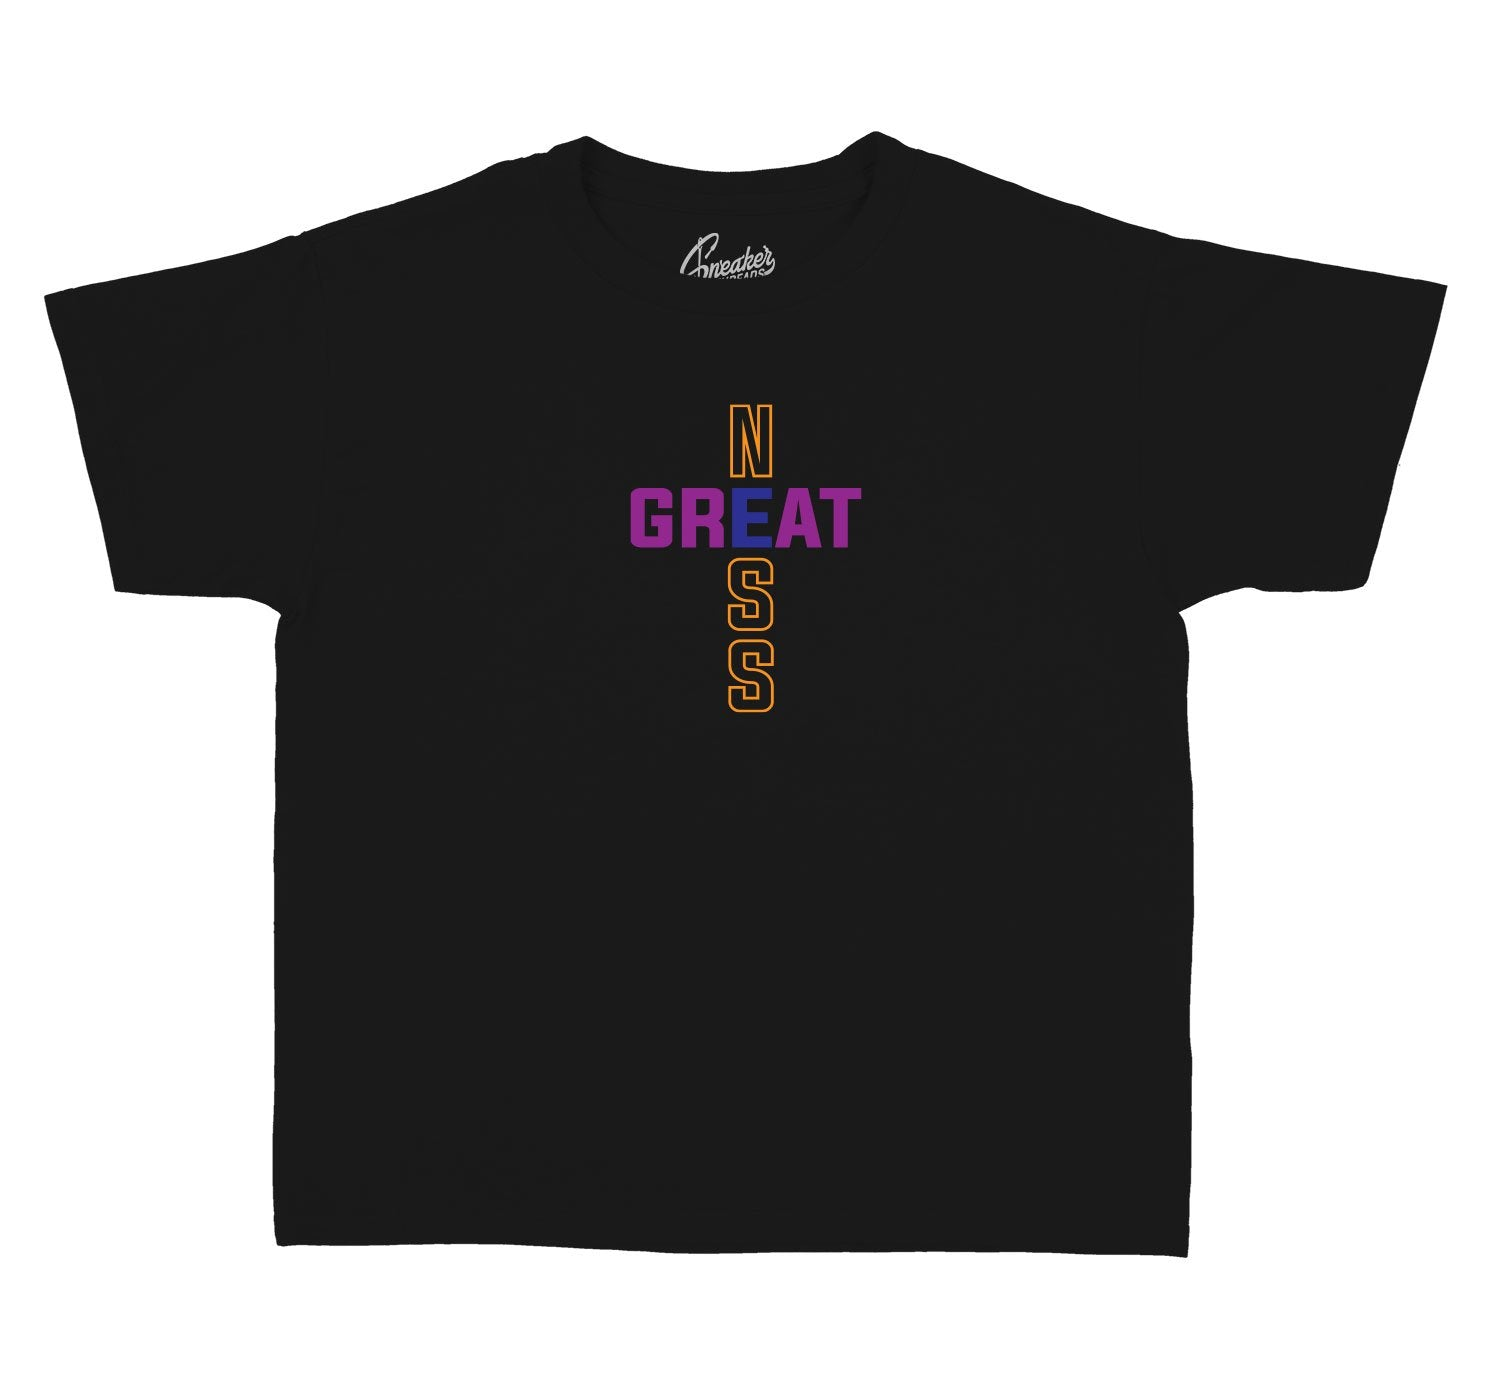 Childrens tees made to match the Jordan 4 rush violet